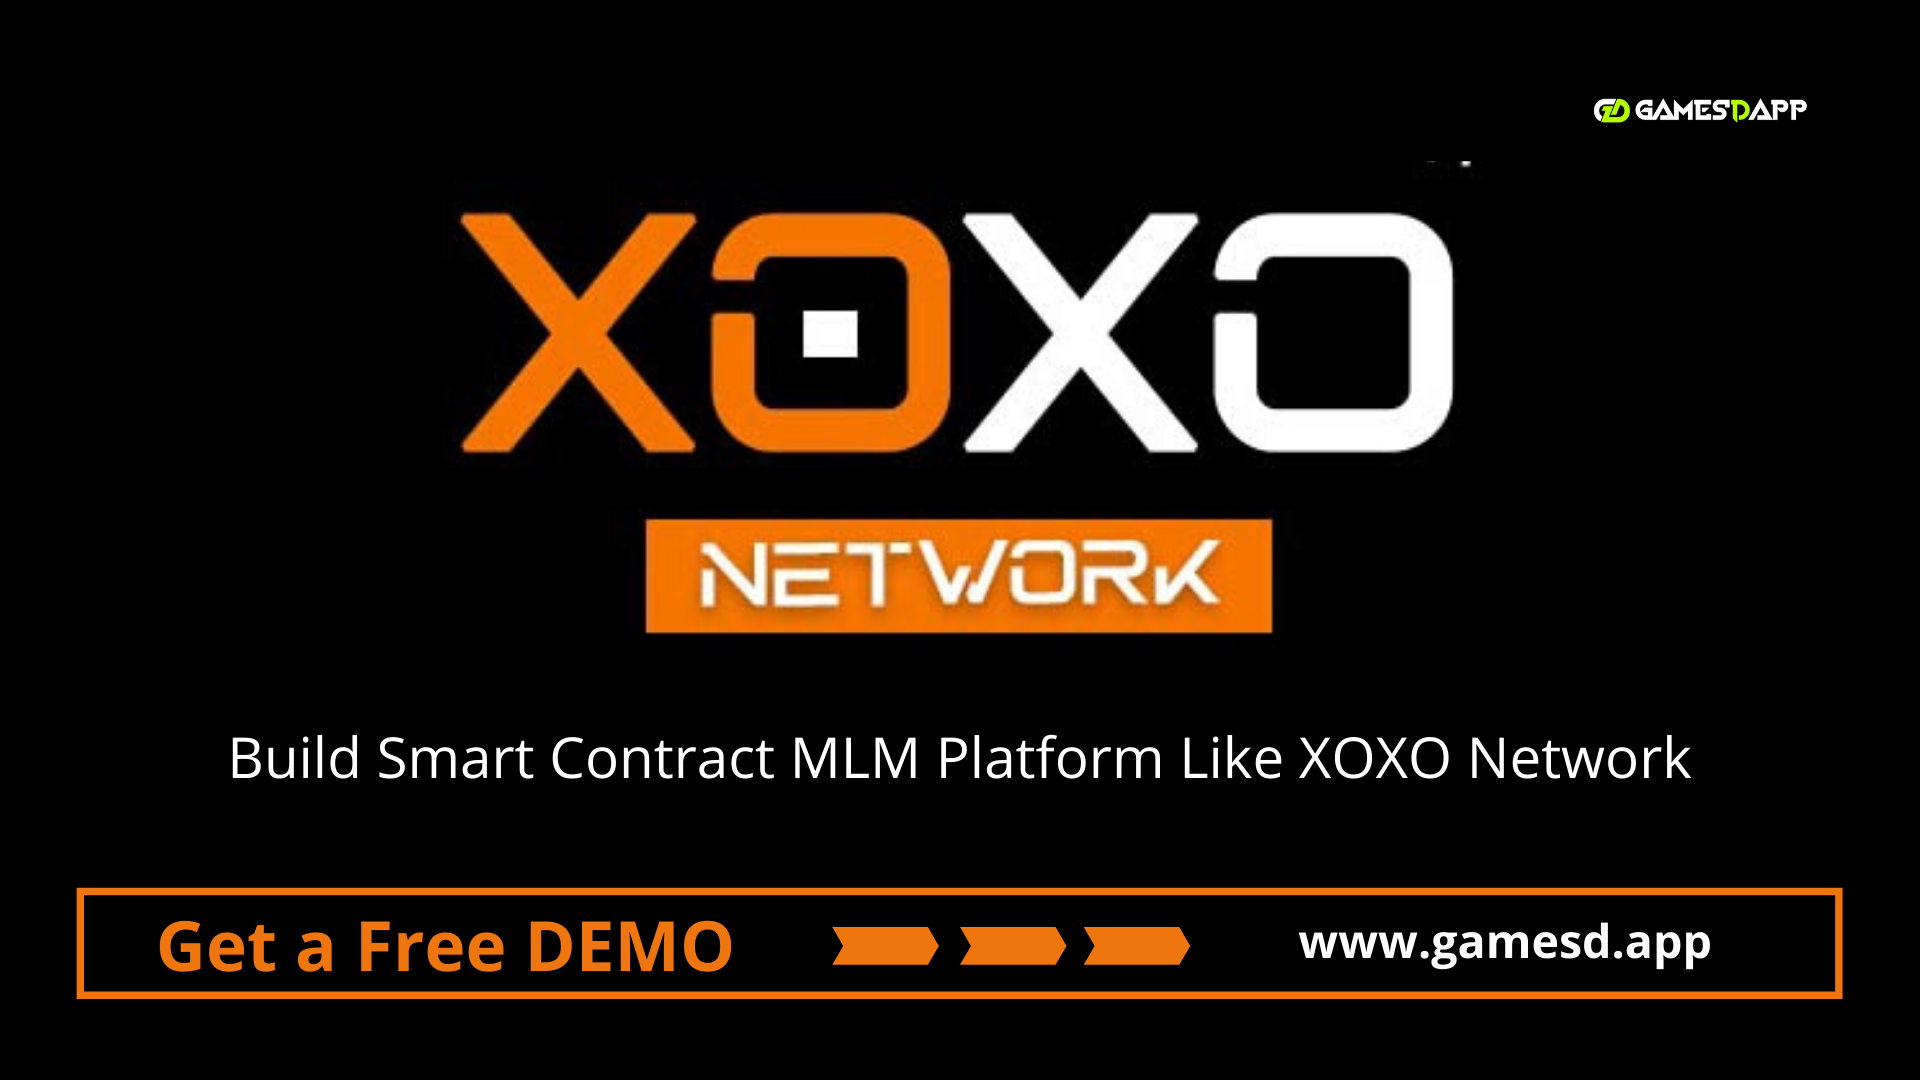 XOXO Network Clone Script : Build Smart Contract MLM Platform Like XOXO Network